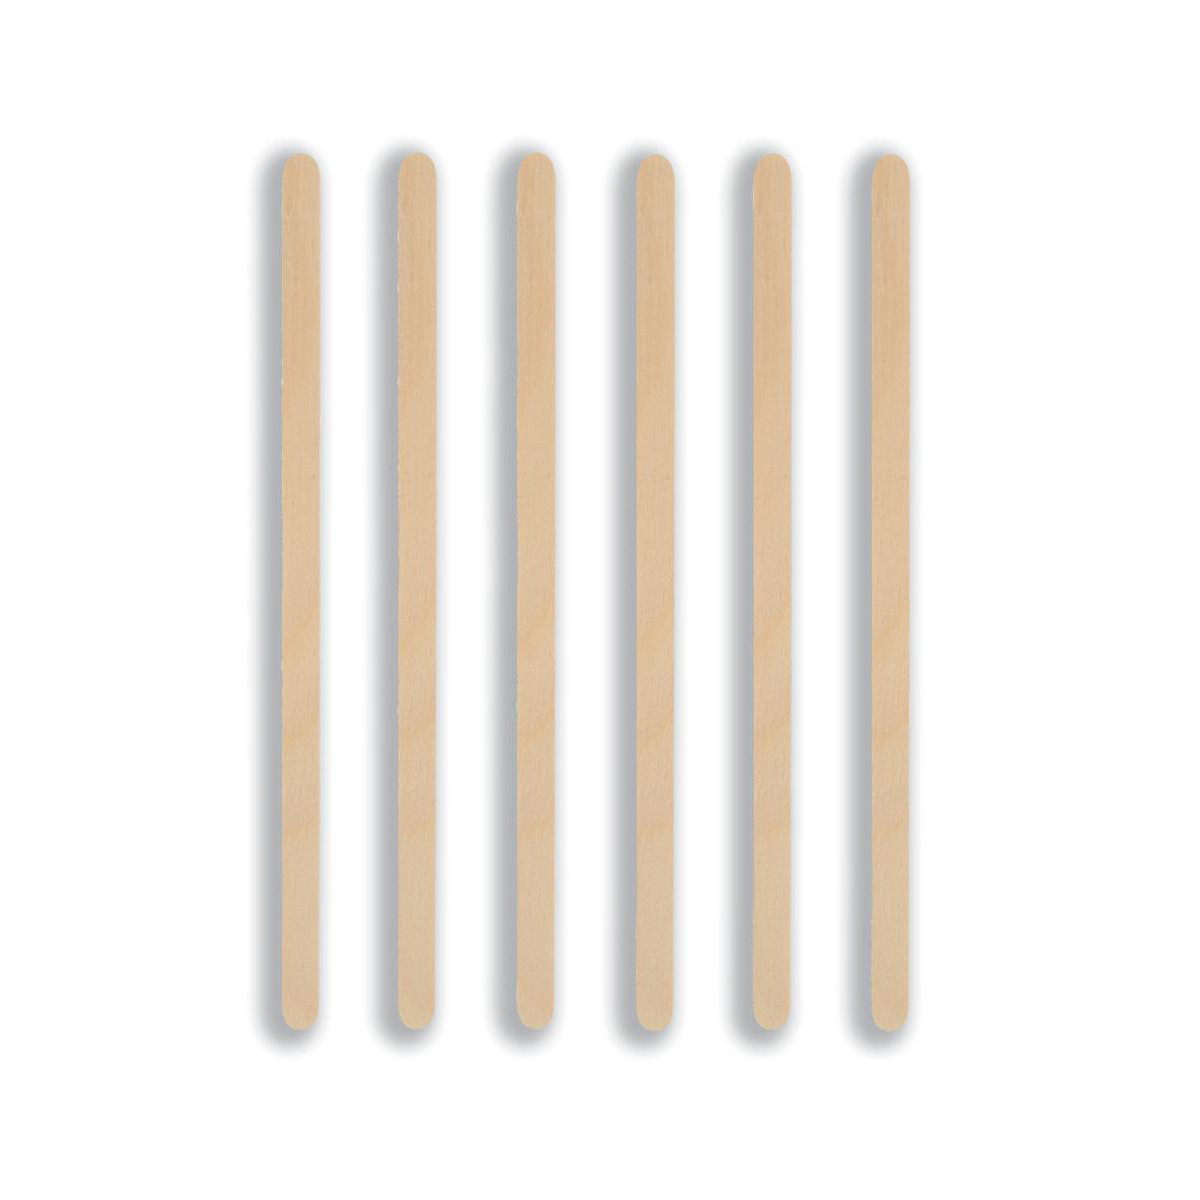 Drink Stirrers Wooden 190mm Ref 0512067 Pack 1000